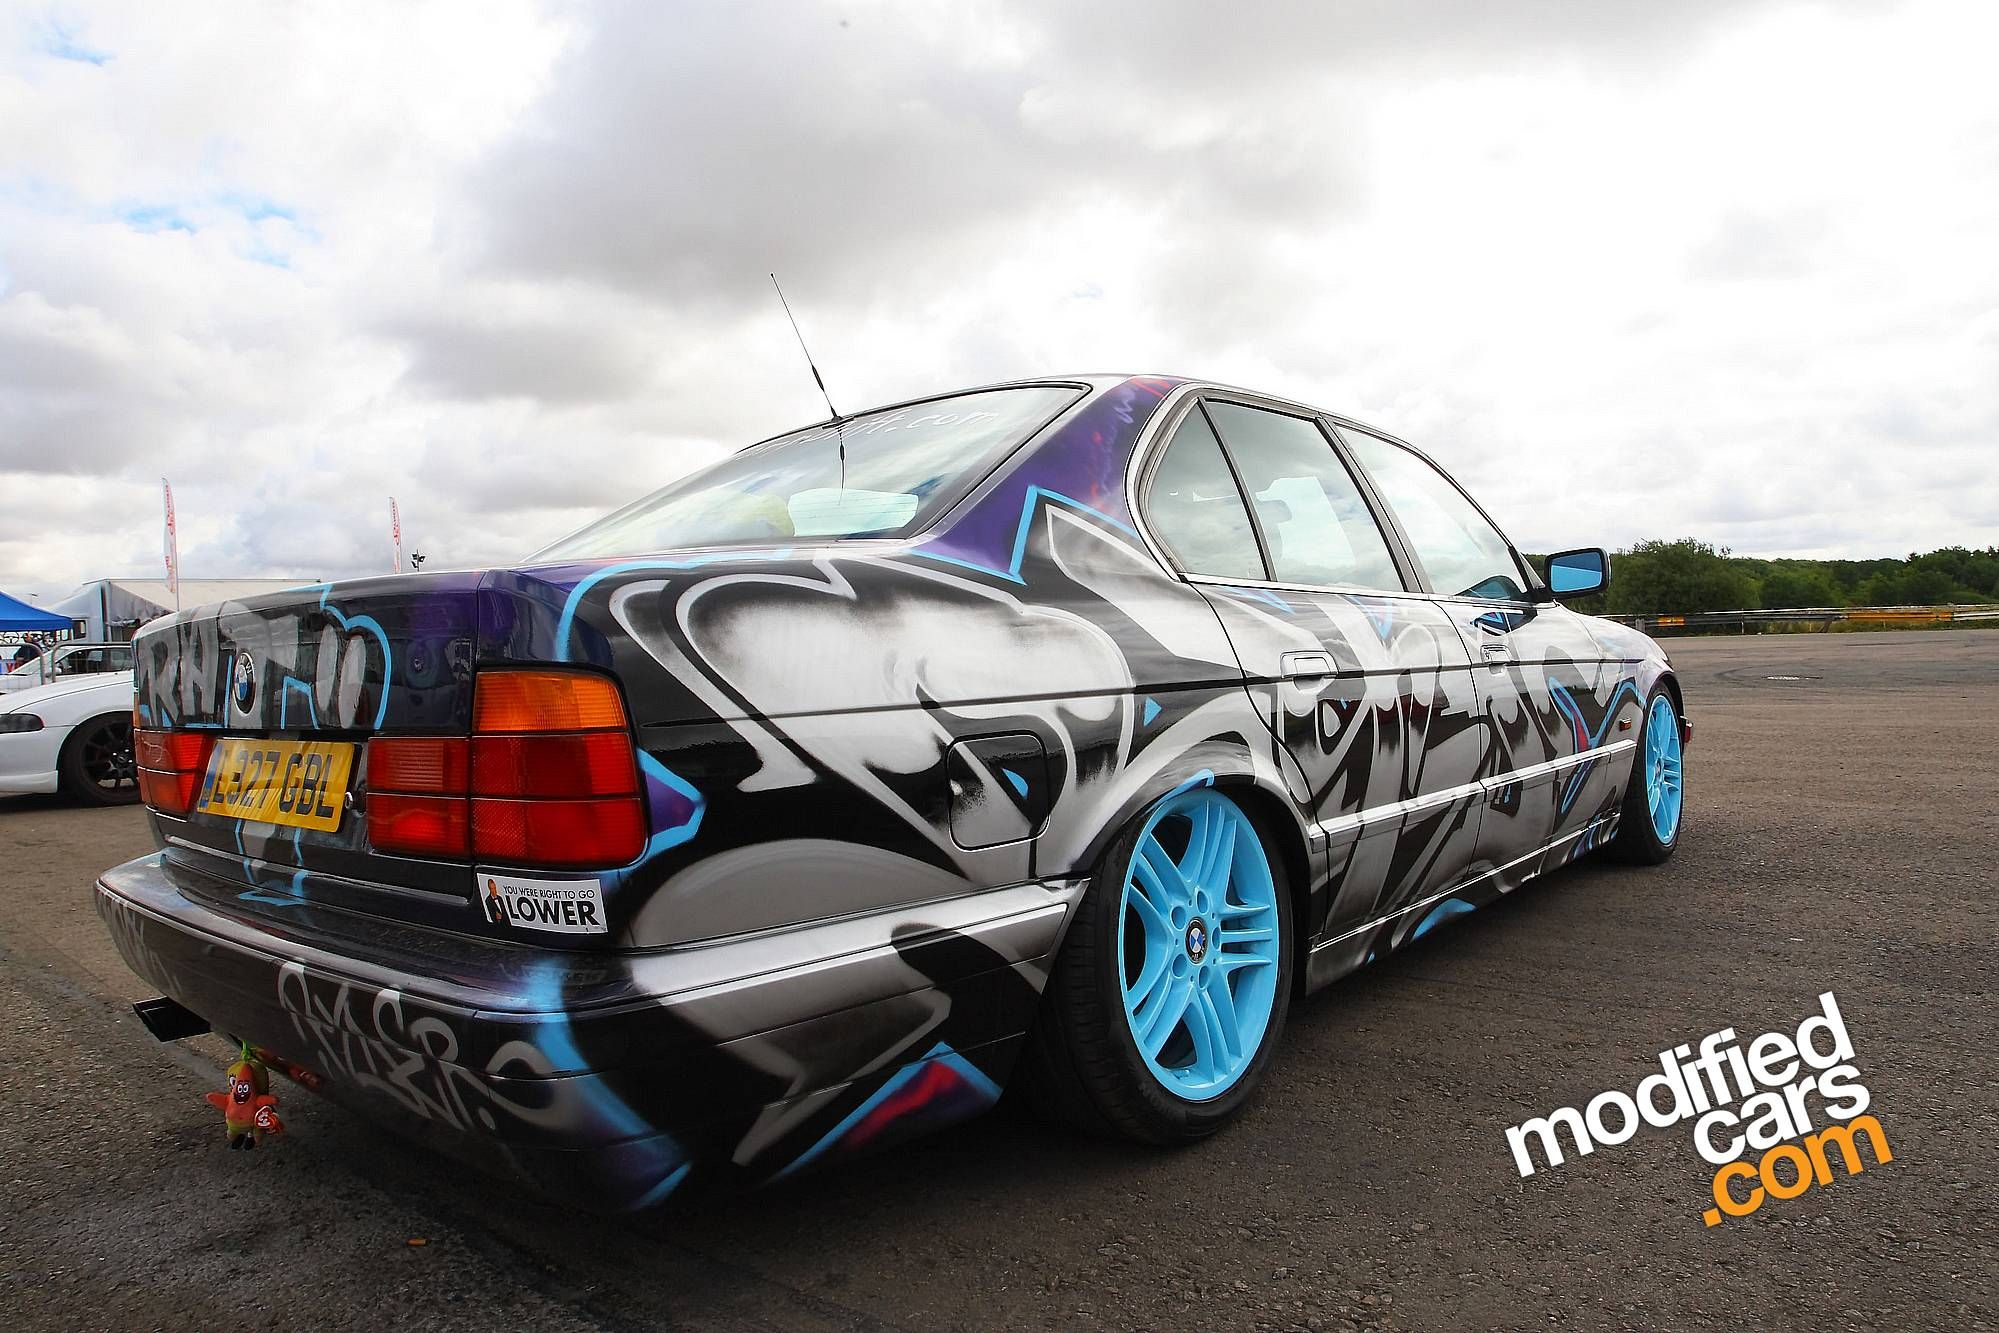 Cool paint jobs on trucks bmw with custom paint job ultimate vip affiliates how to paint your car do it yourself auto body and paint training site solutioingenieria Choice Image